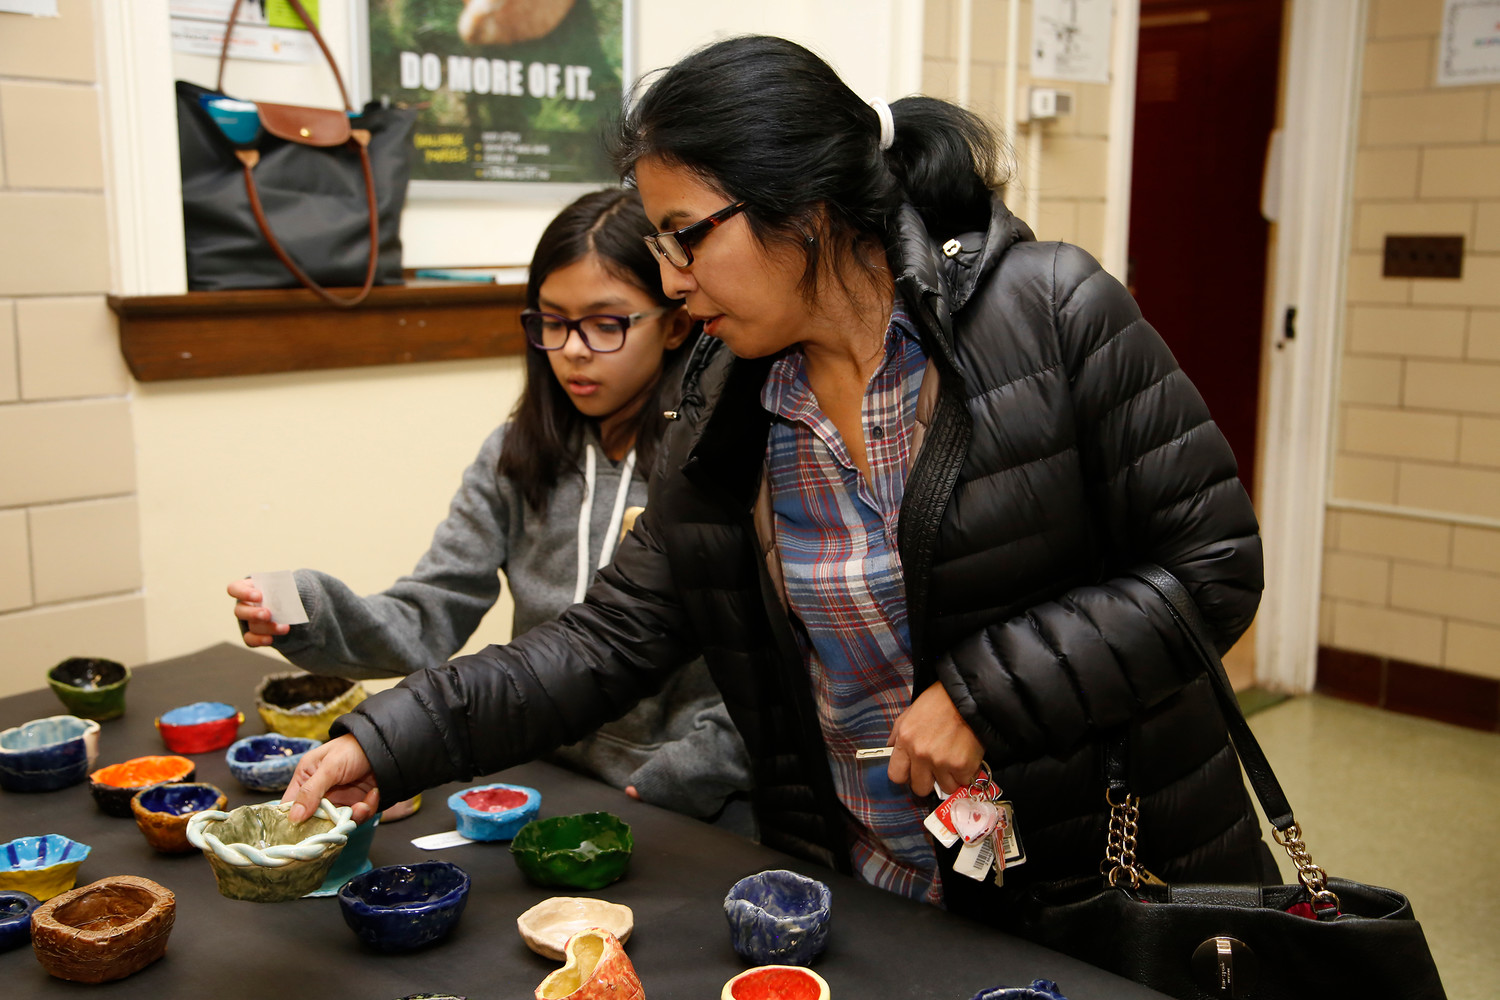 Emily Valdebenito, 9, and her mom, Ledda, picked out a handmade bowl at the Empty Bowls fundraiser on Nov. 30.